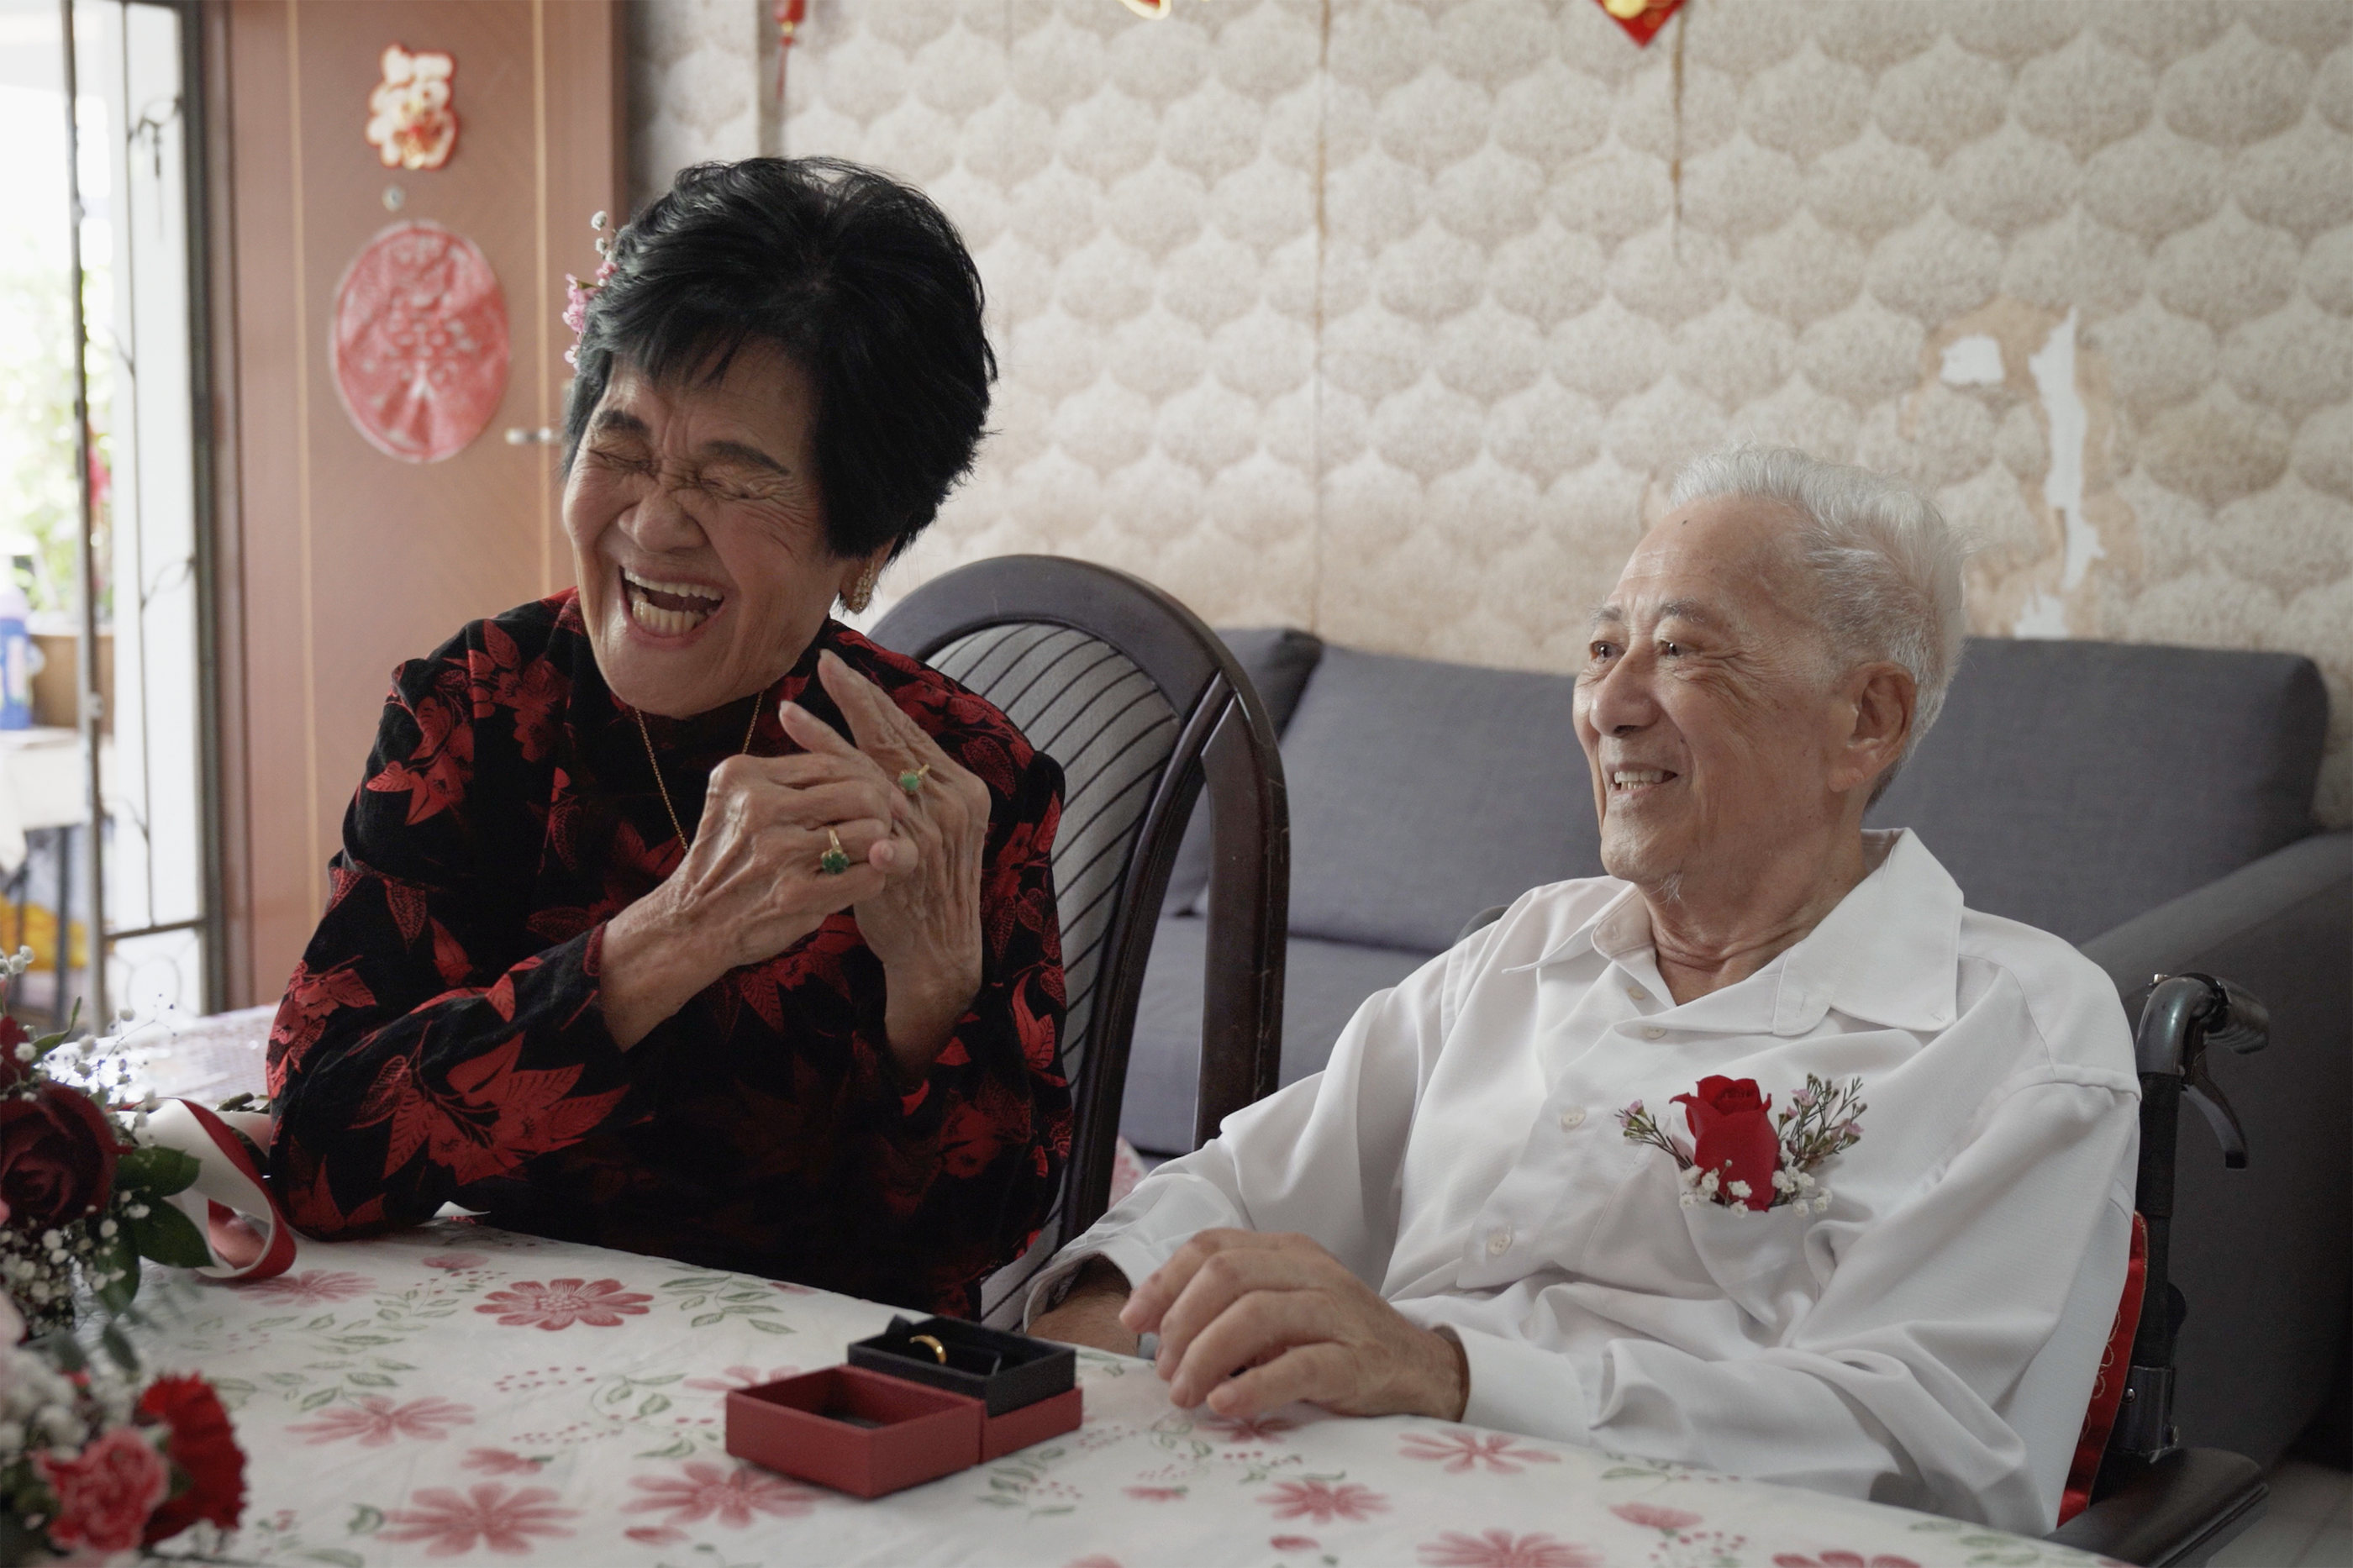 Madam Chia Pee Kim, 84 and Mr Tay Soo Hian, 86 exchange vows on their wedding day in August.